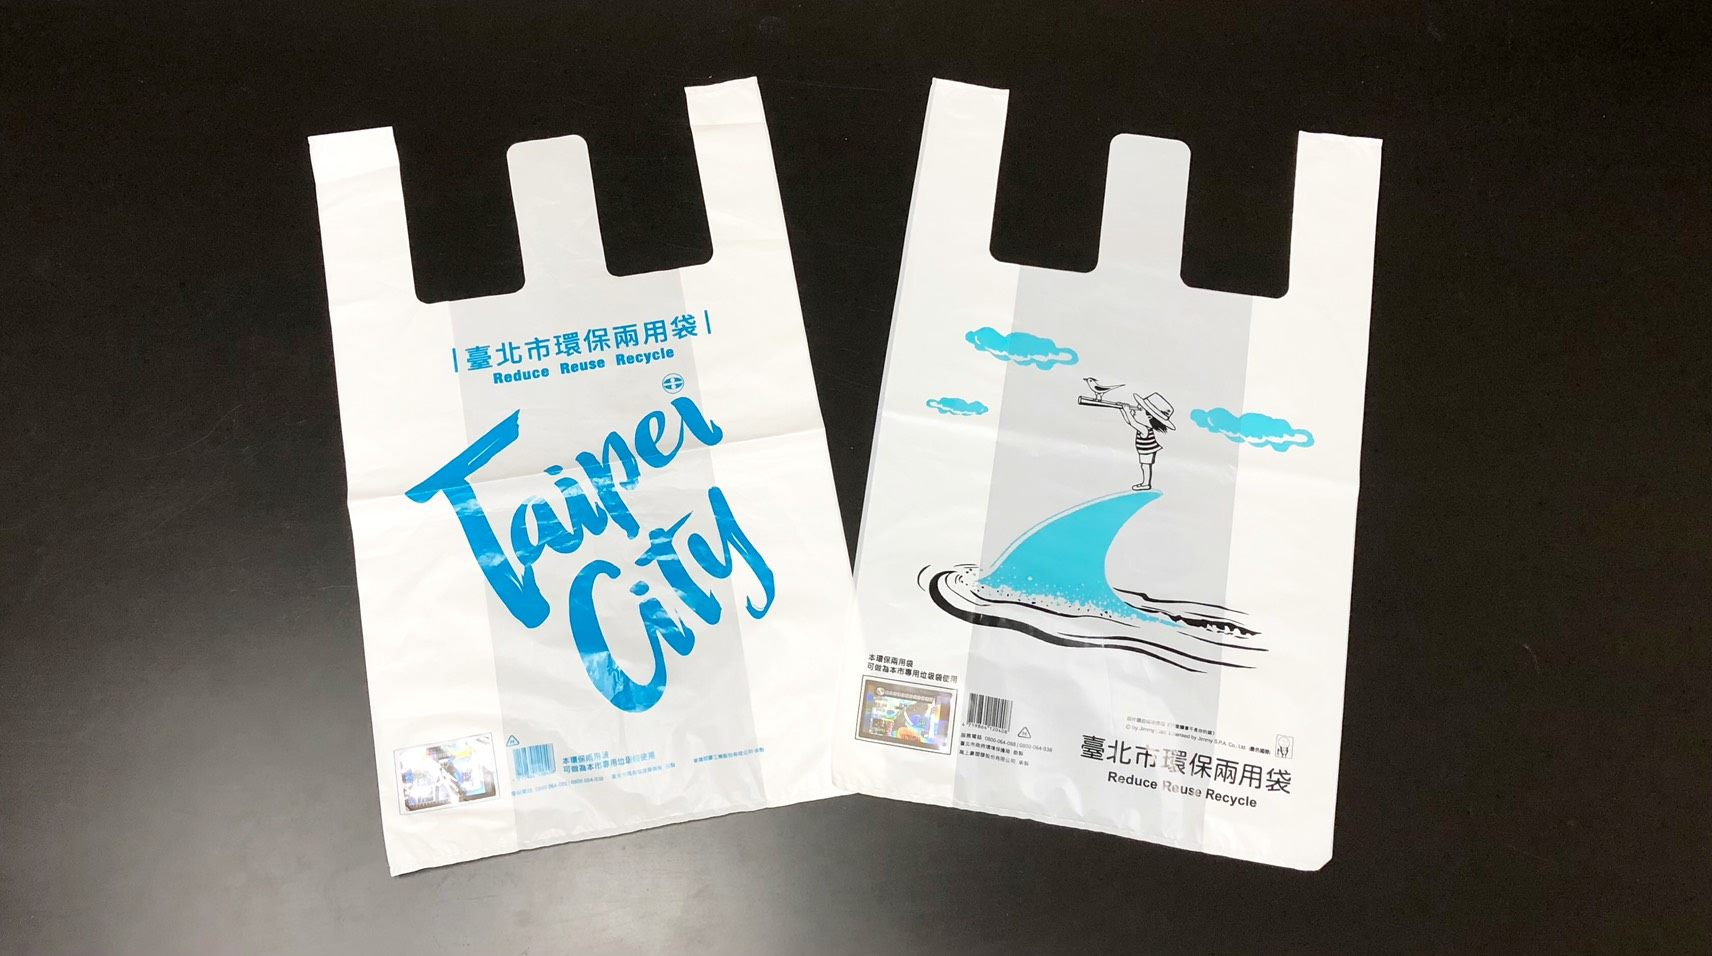 The second limited edition designated trash bags with Jimmy Liao's illustration.